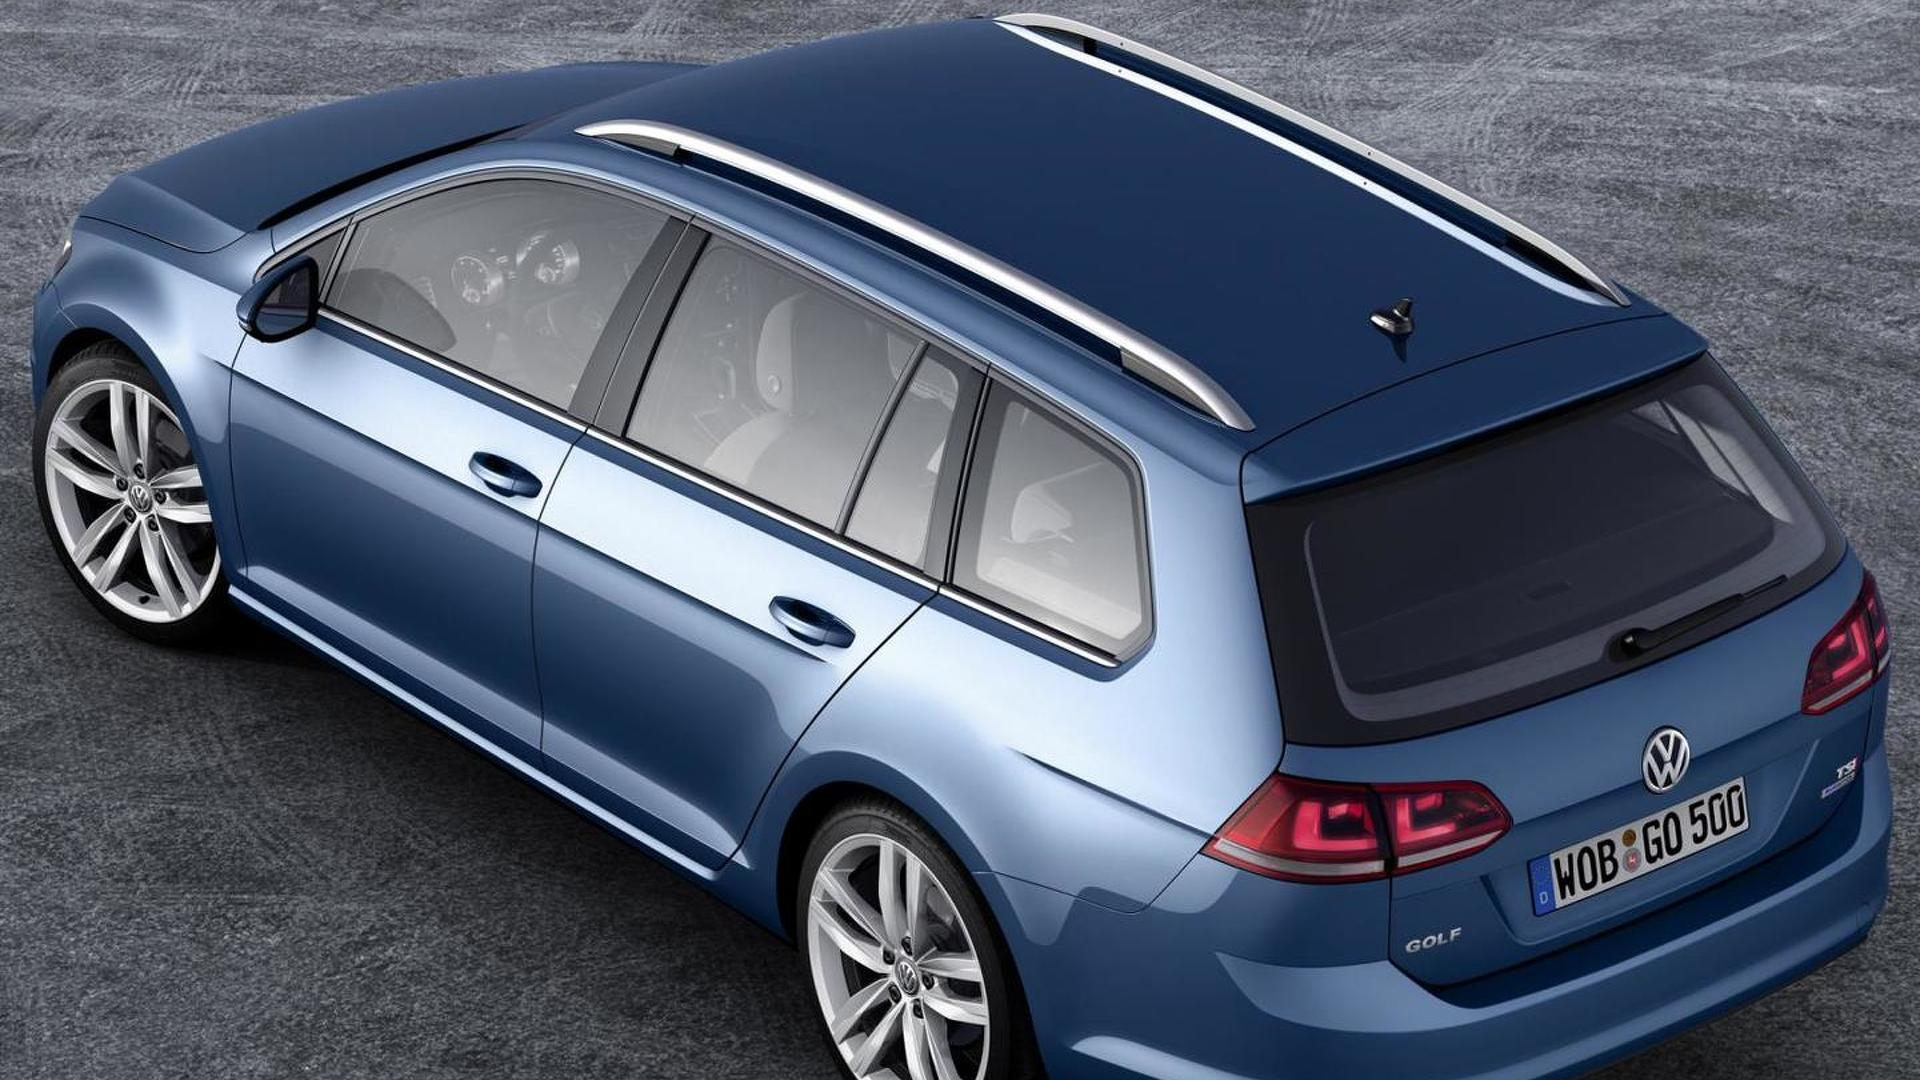 2013 Volkswagen Golf Variant first official photos available [more photos added]